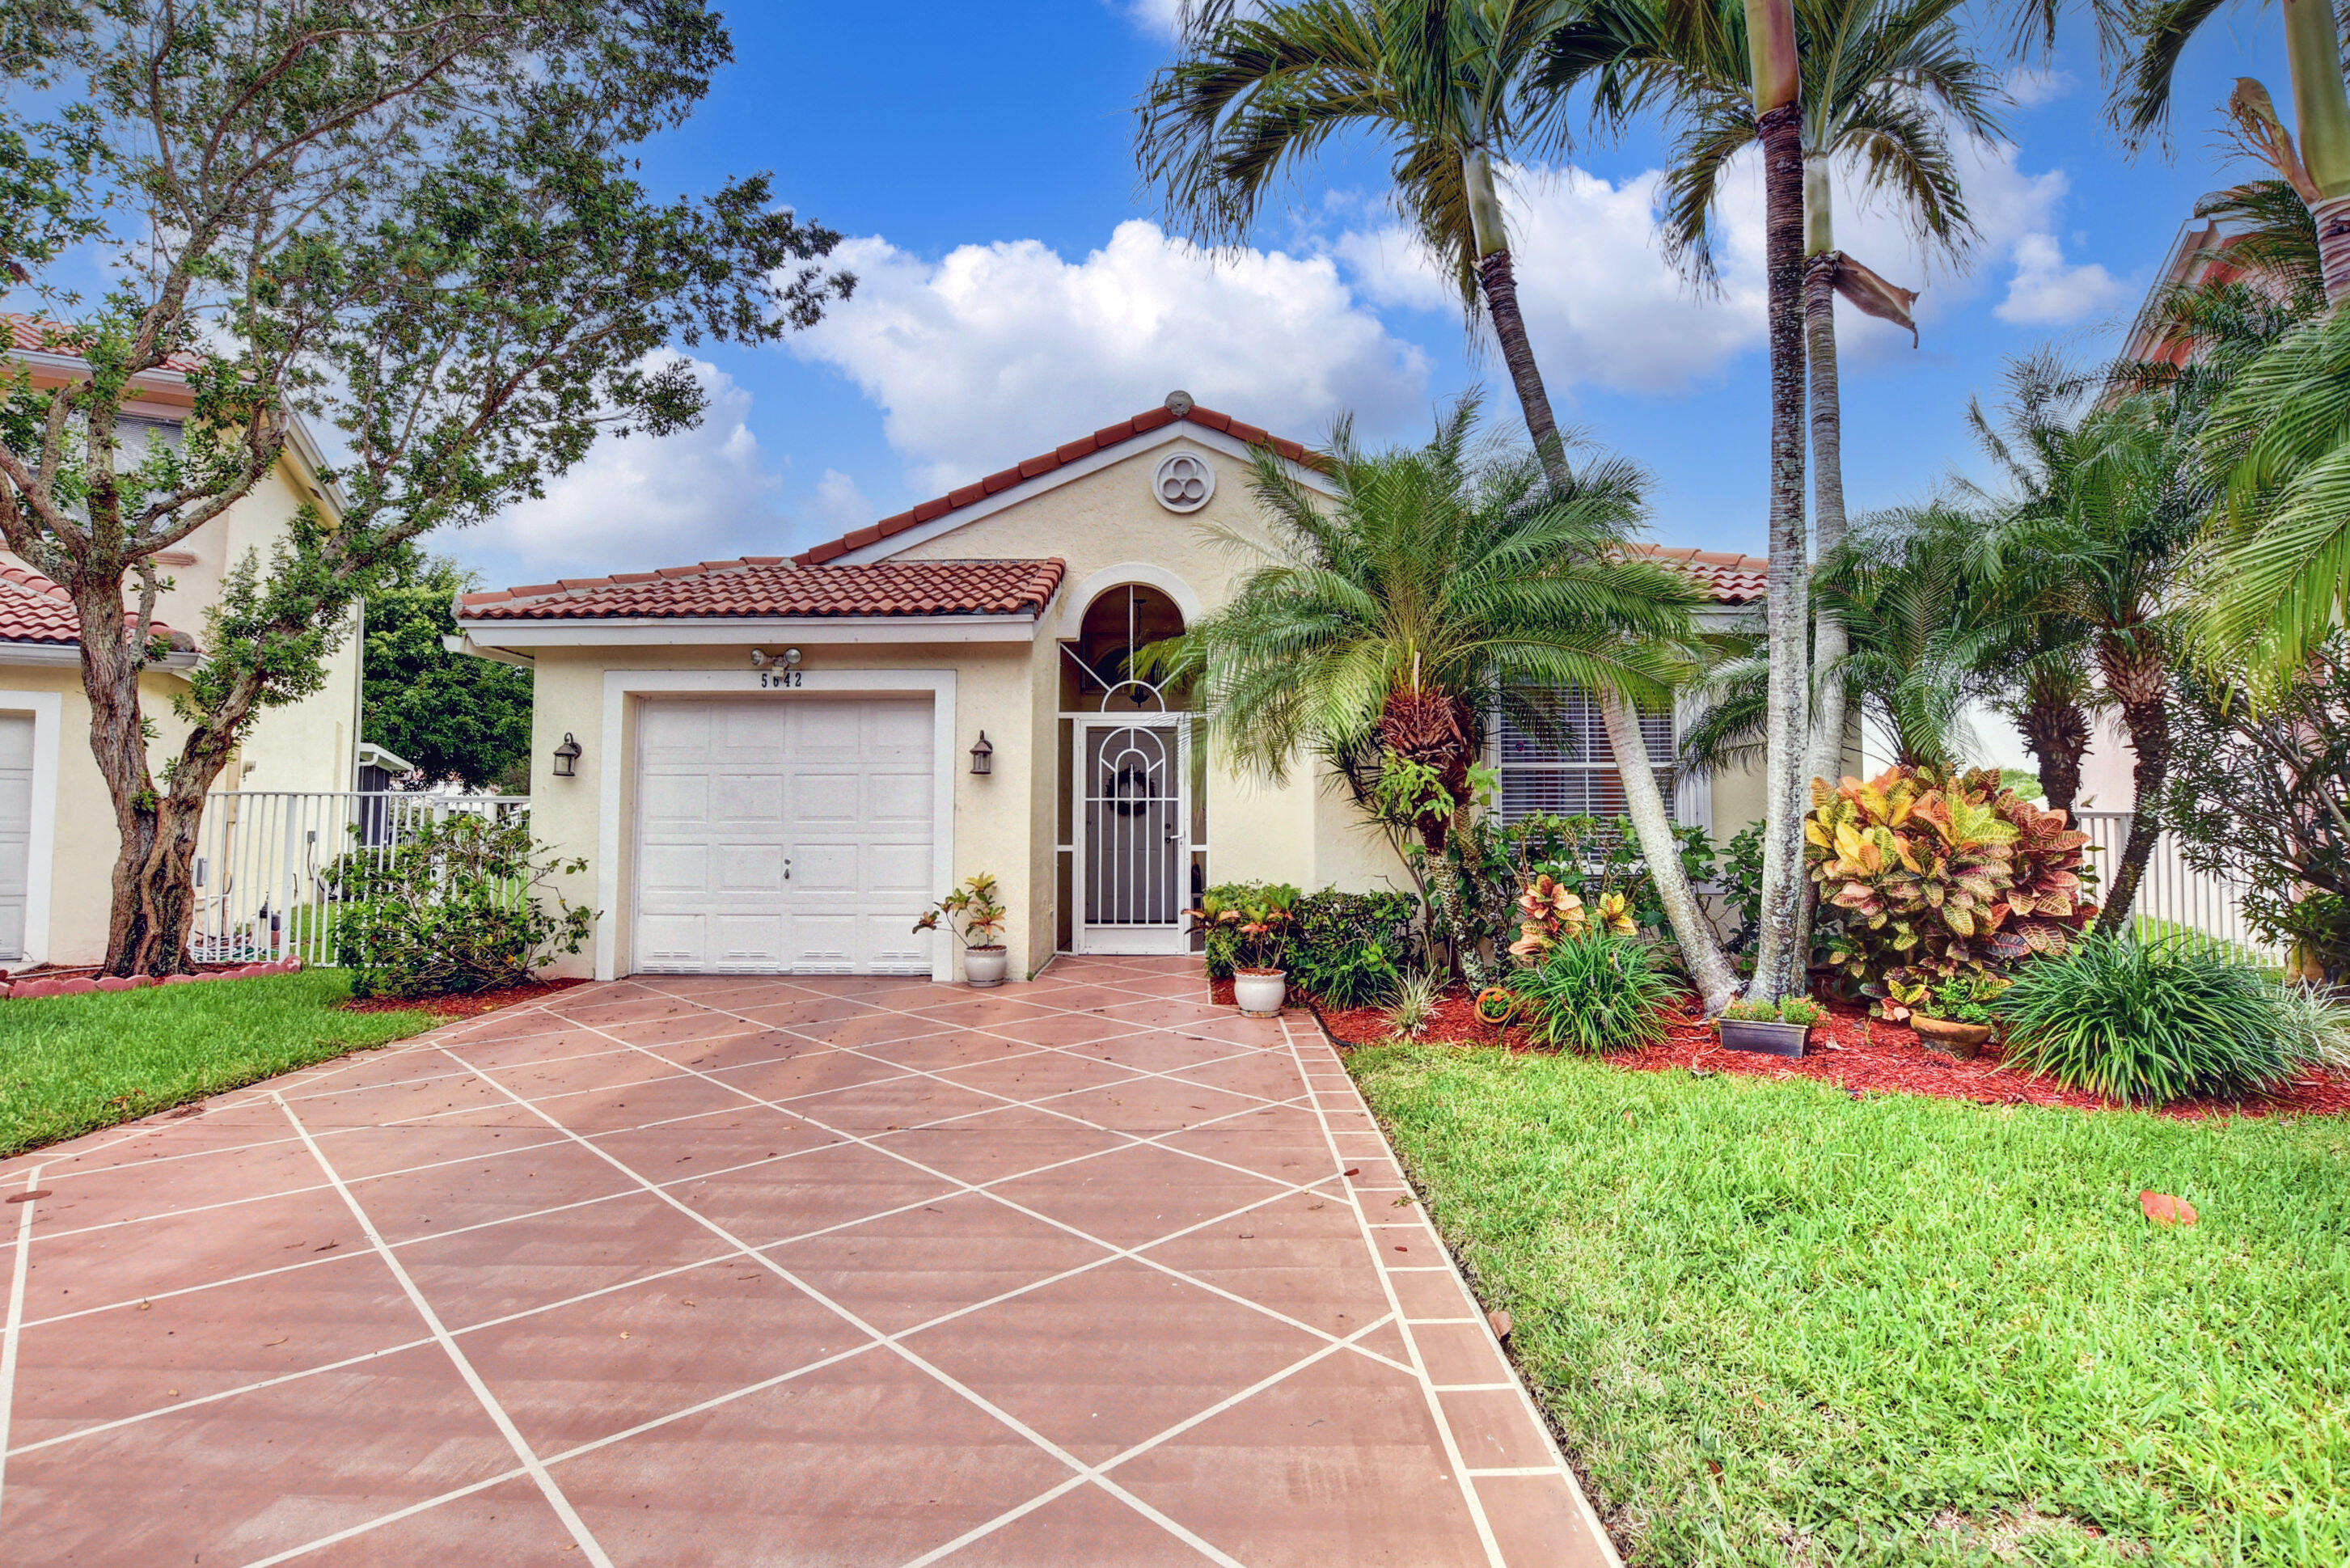 Home for sale in Winston Trails / The Greens Community Lake Worth Florida